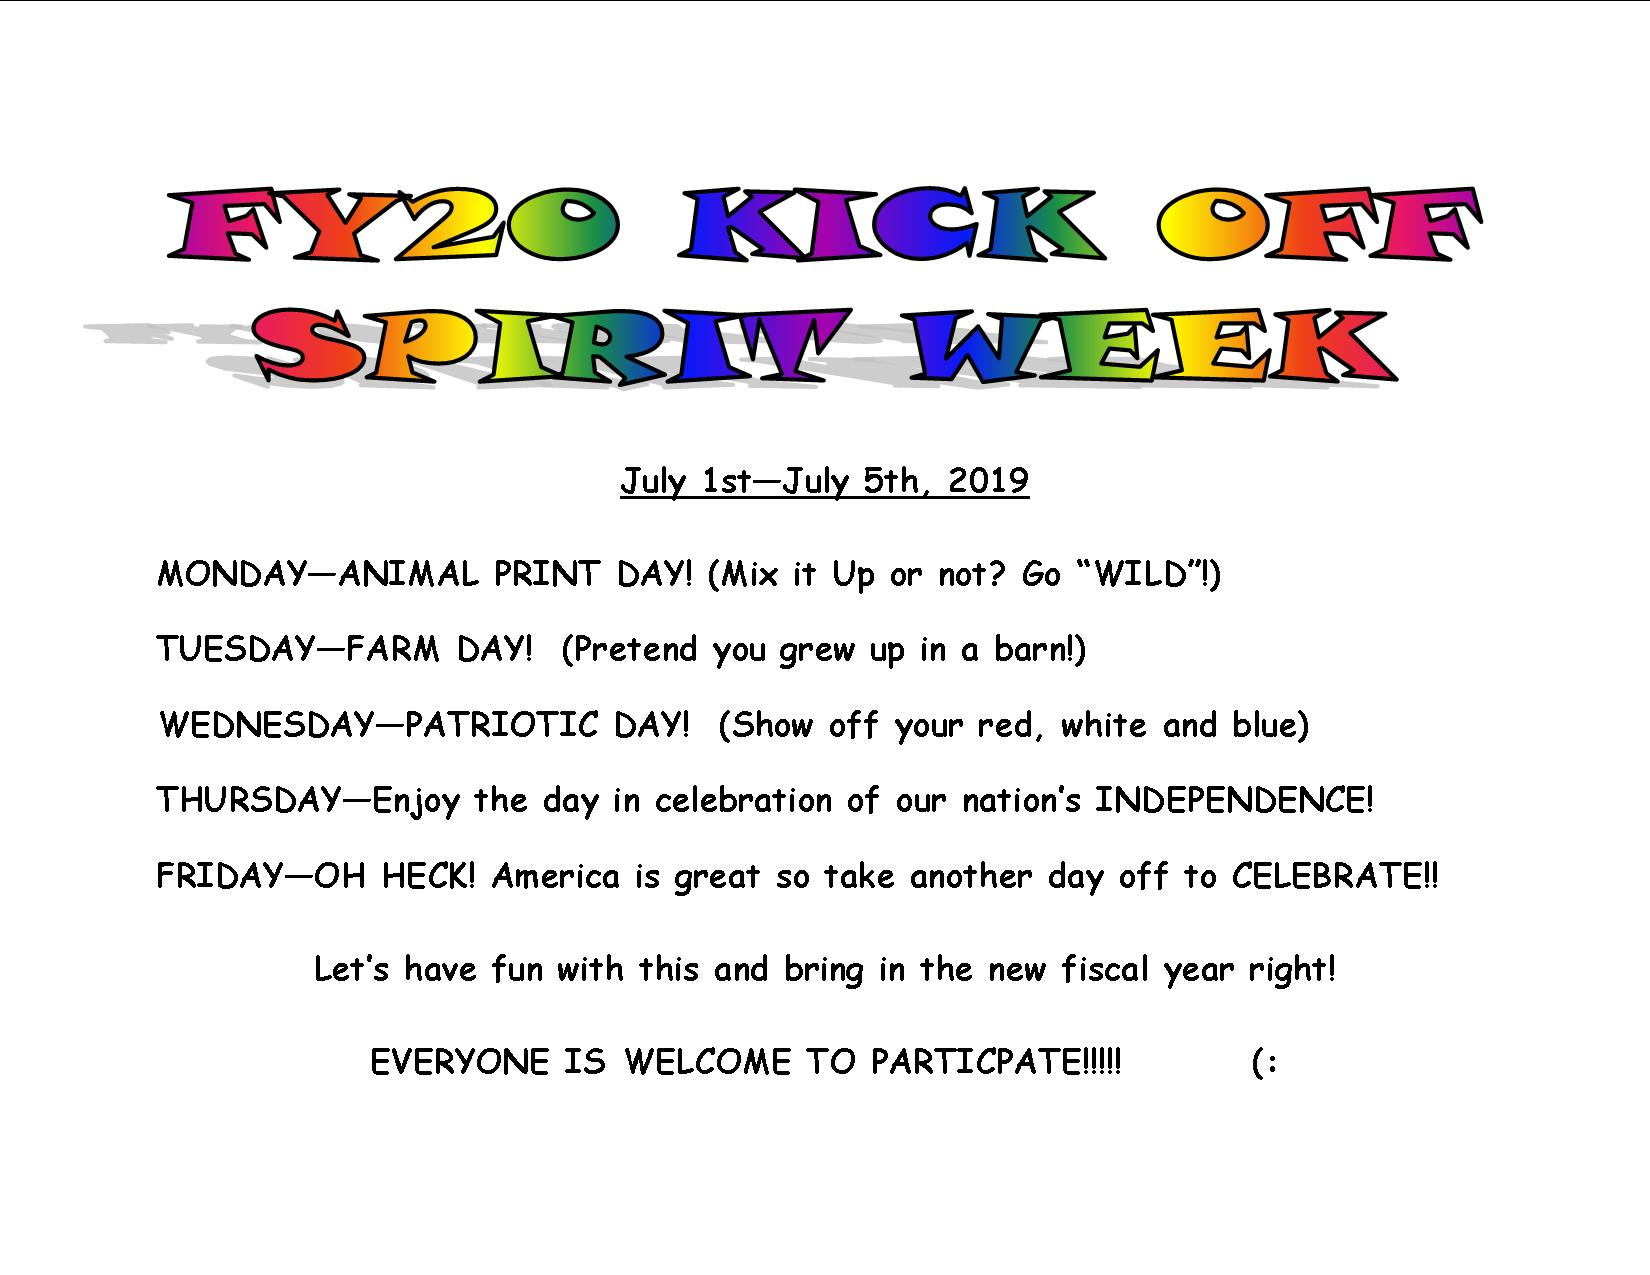 spirit_week_fy20_kick_off.jpg